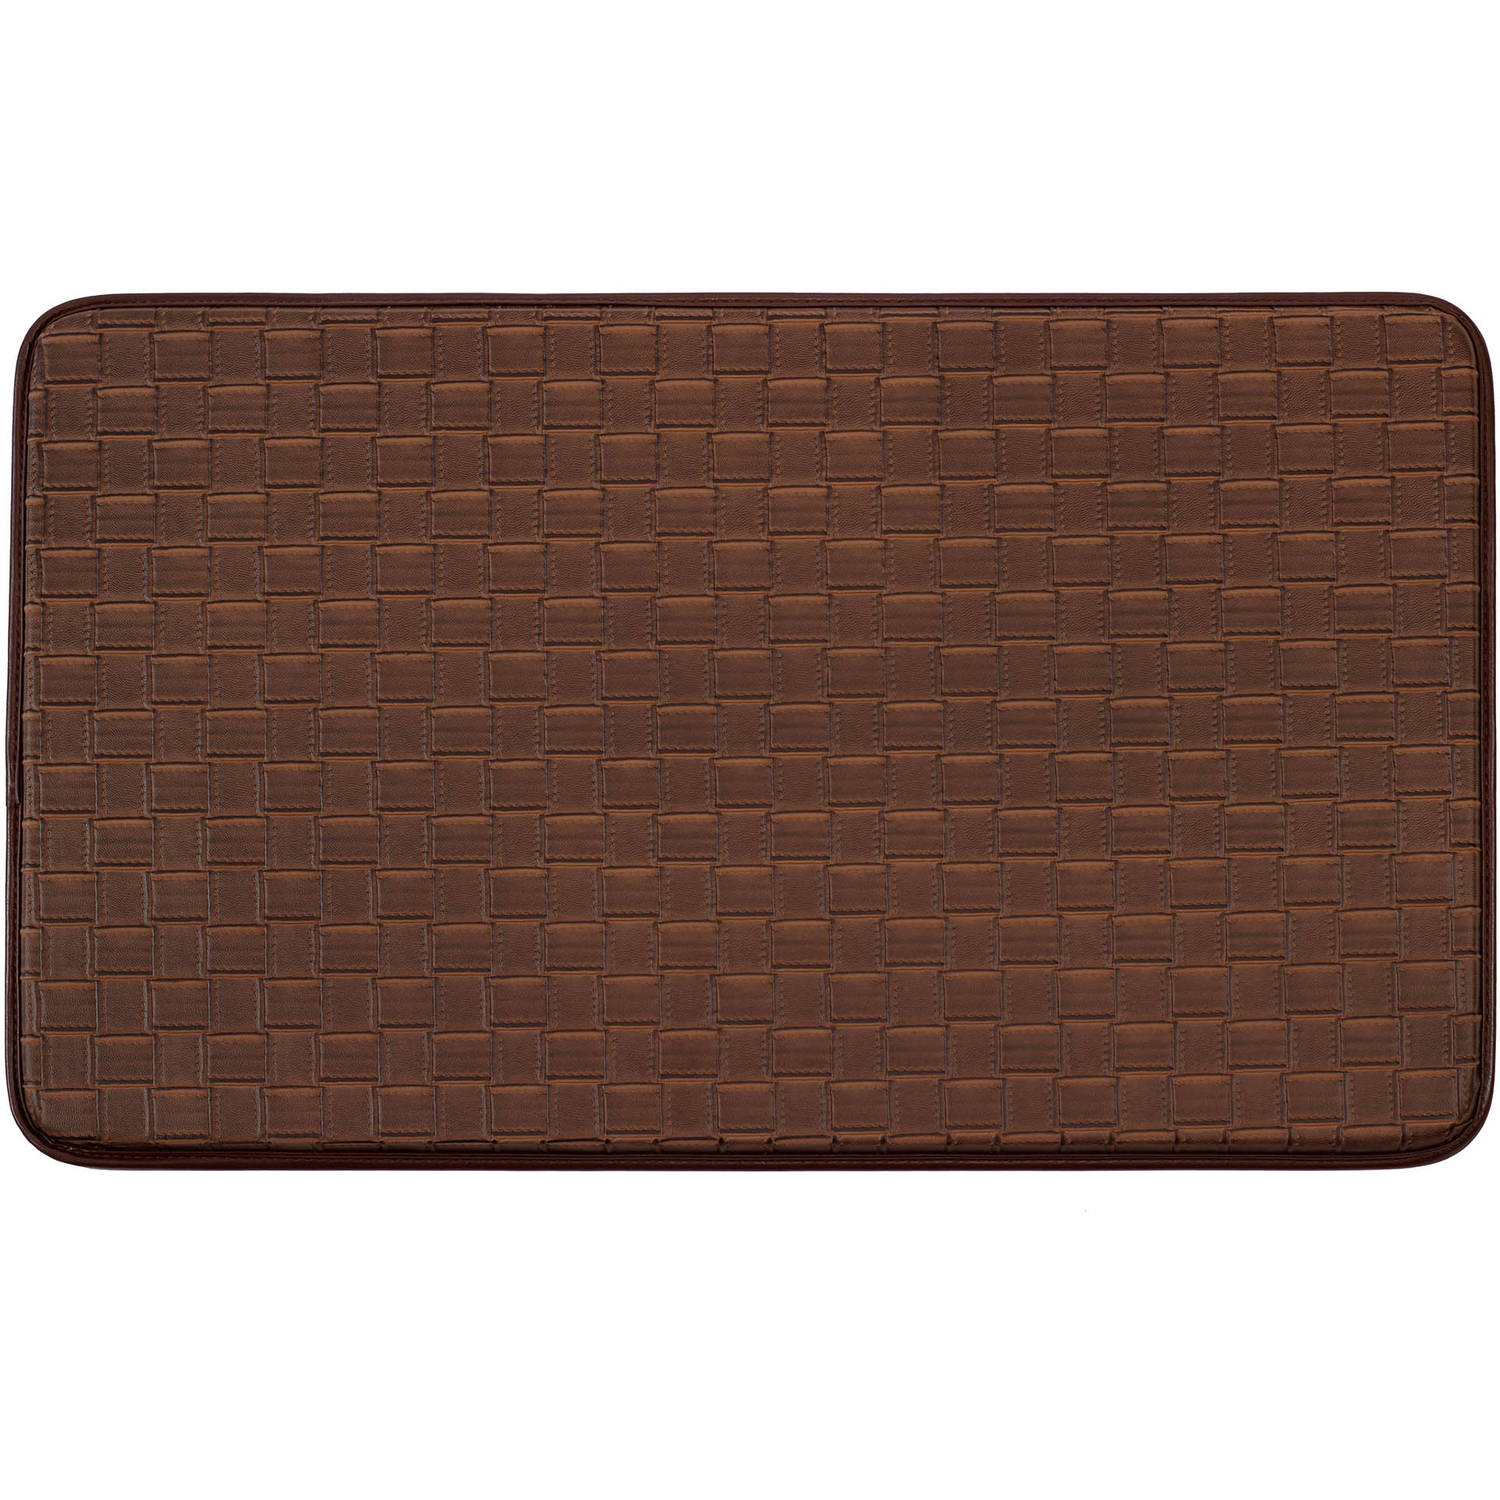 "Chef Gear Faux-Leather Basket Weave 24"" x 36"" Comfort Chef Mat"